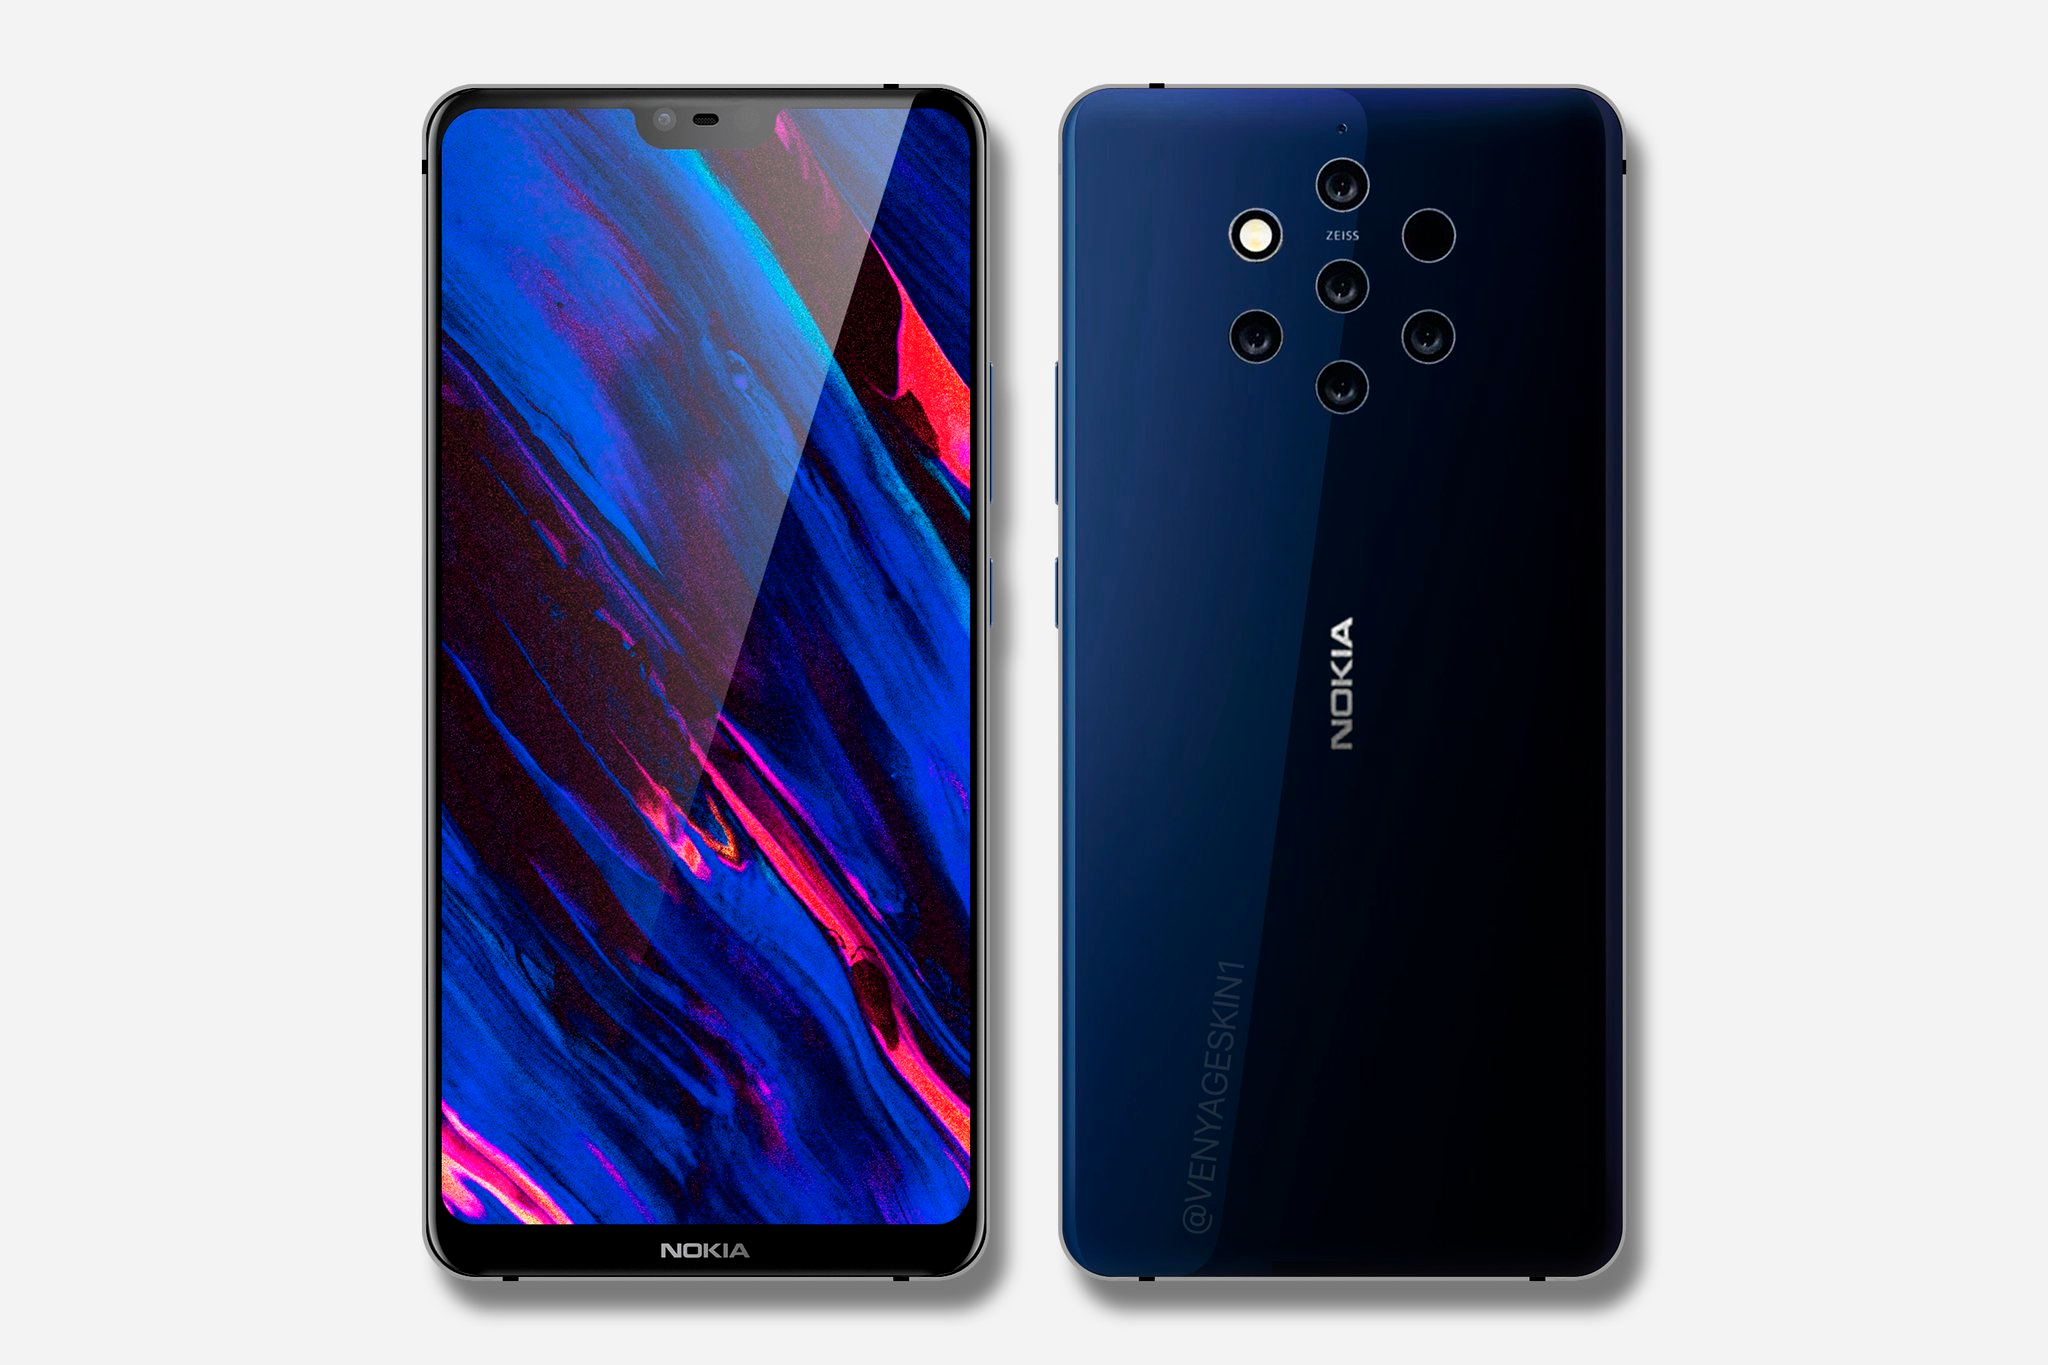 Nokia 9 IMAGES LEAK SHOWS 5 REAR CAMERAS WITH FLASH AND LASER AUTO FOCUS